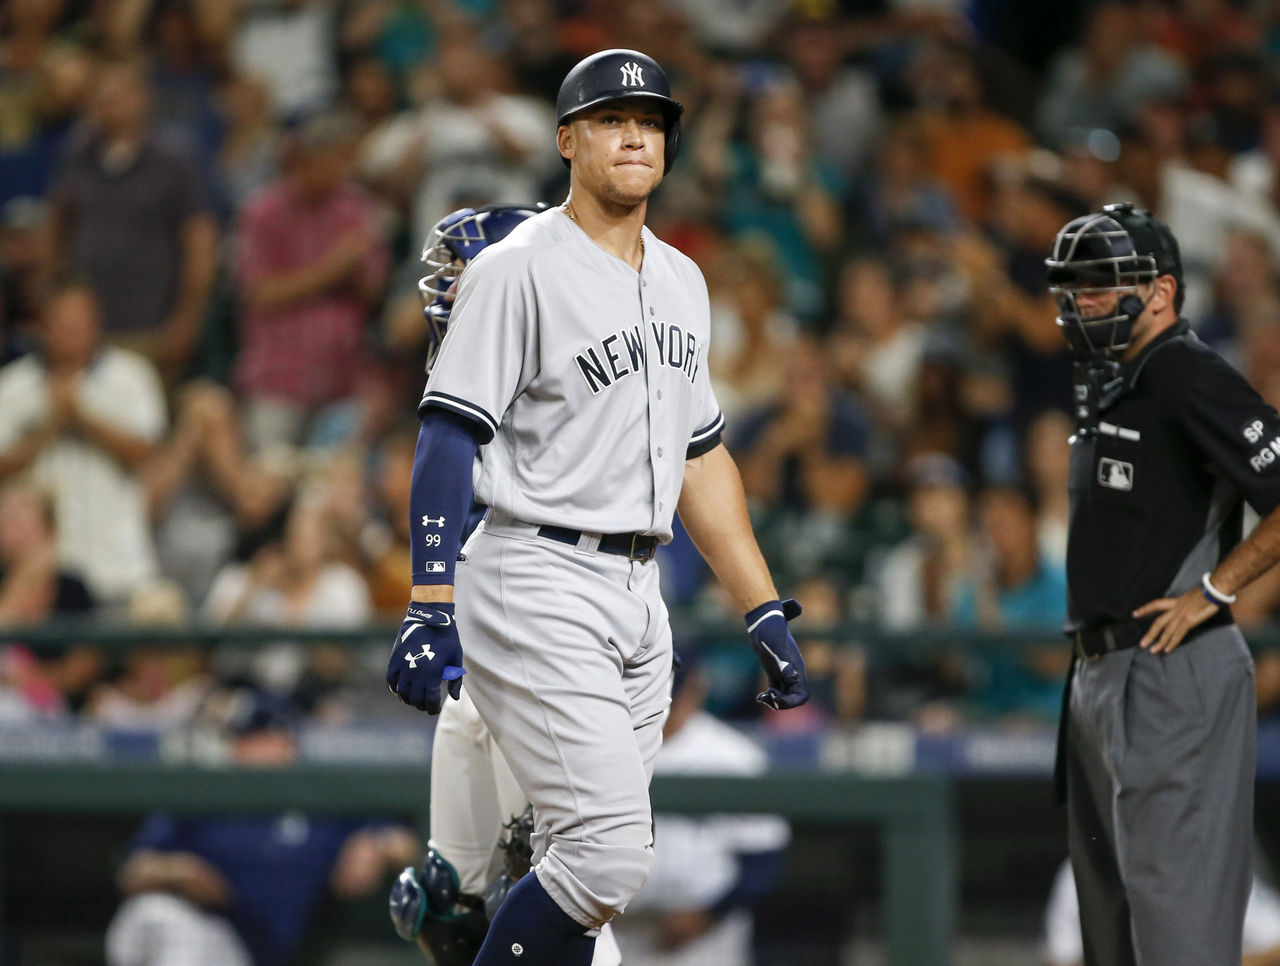 Cropped 2017 07 23t052747z 1670259849 nocid rtrmadp 3 mlb new york yankees at seattle mariners